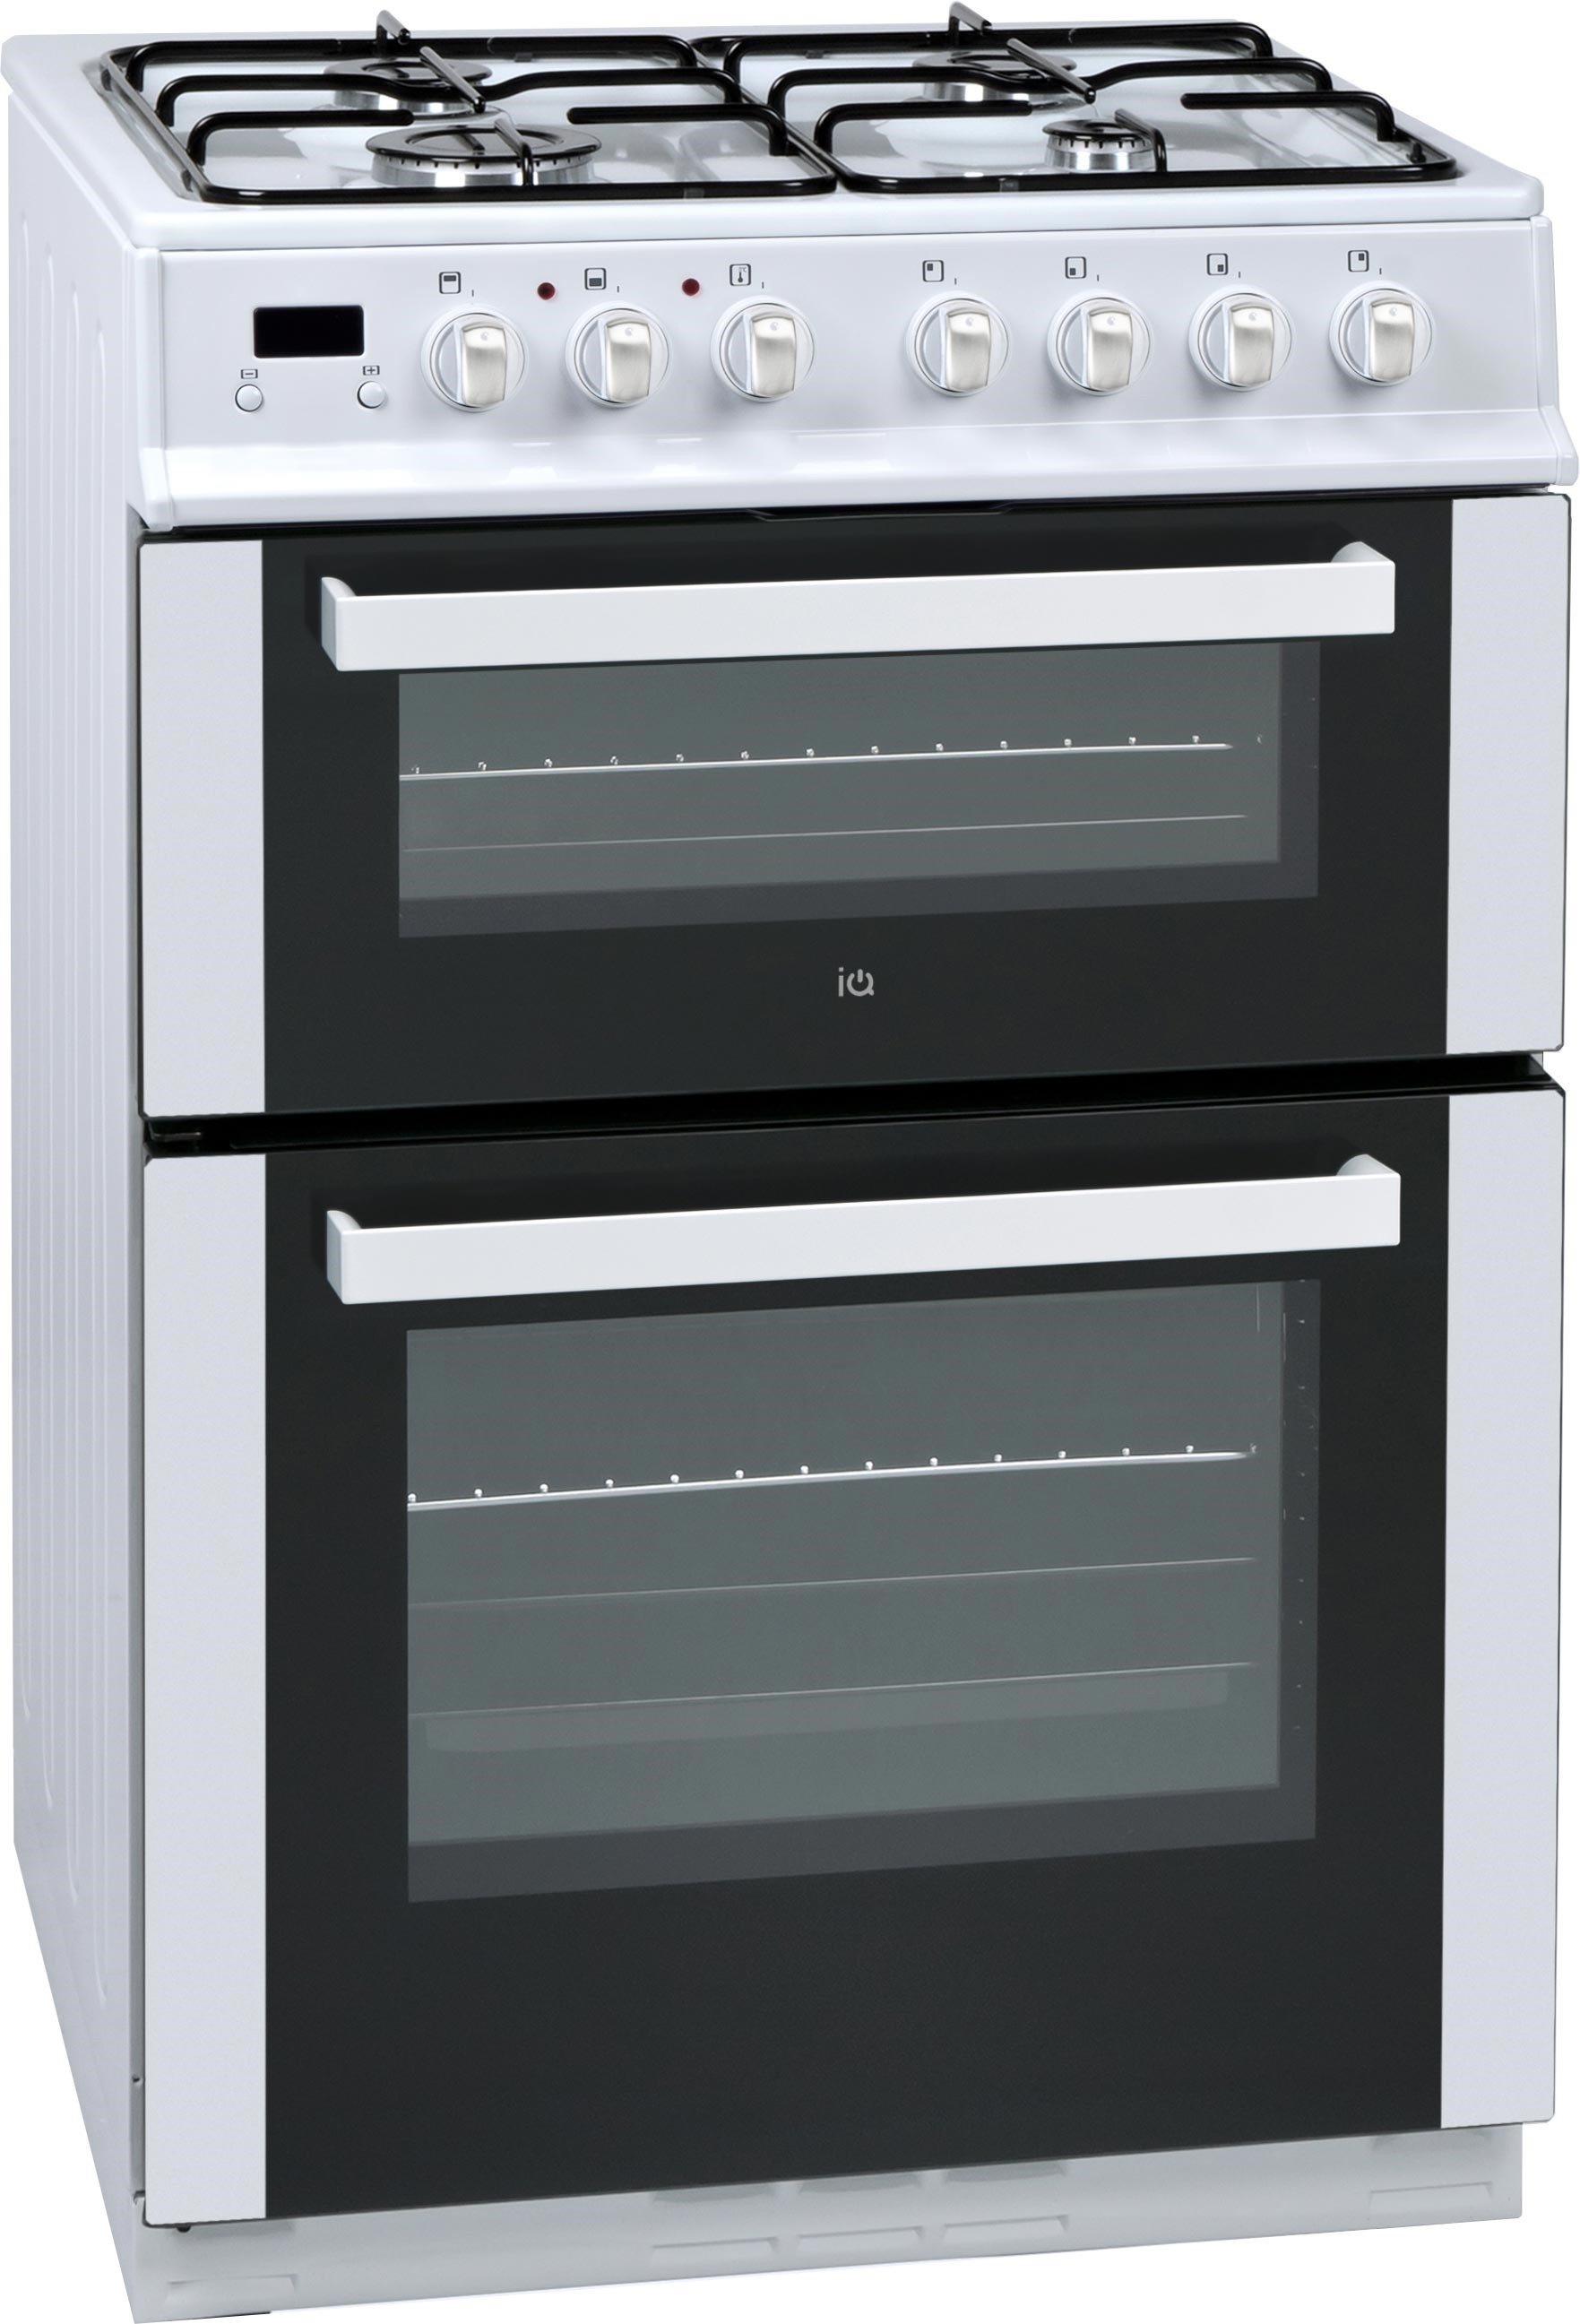 Dual fuel double oven cooker